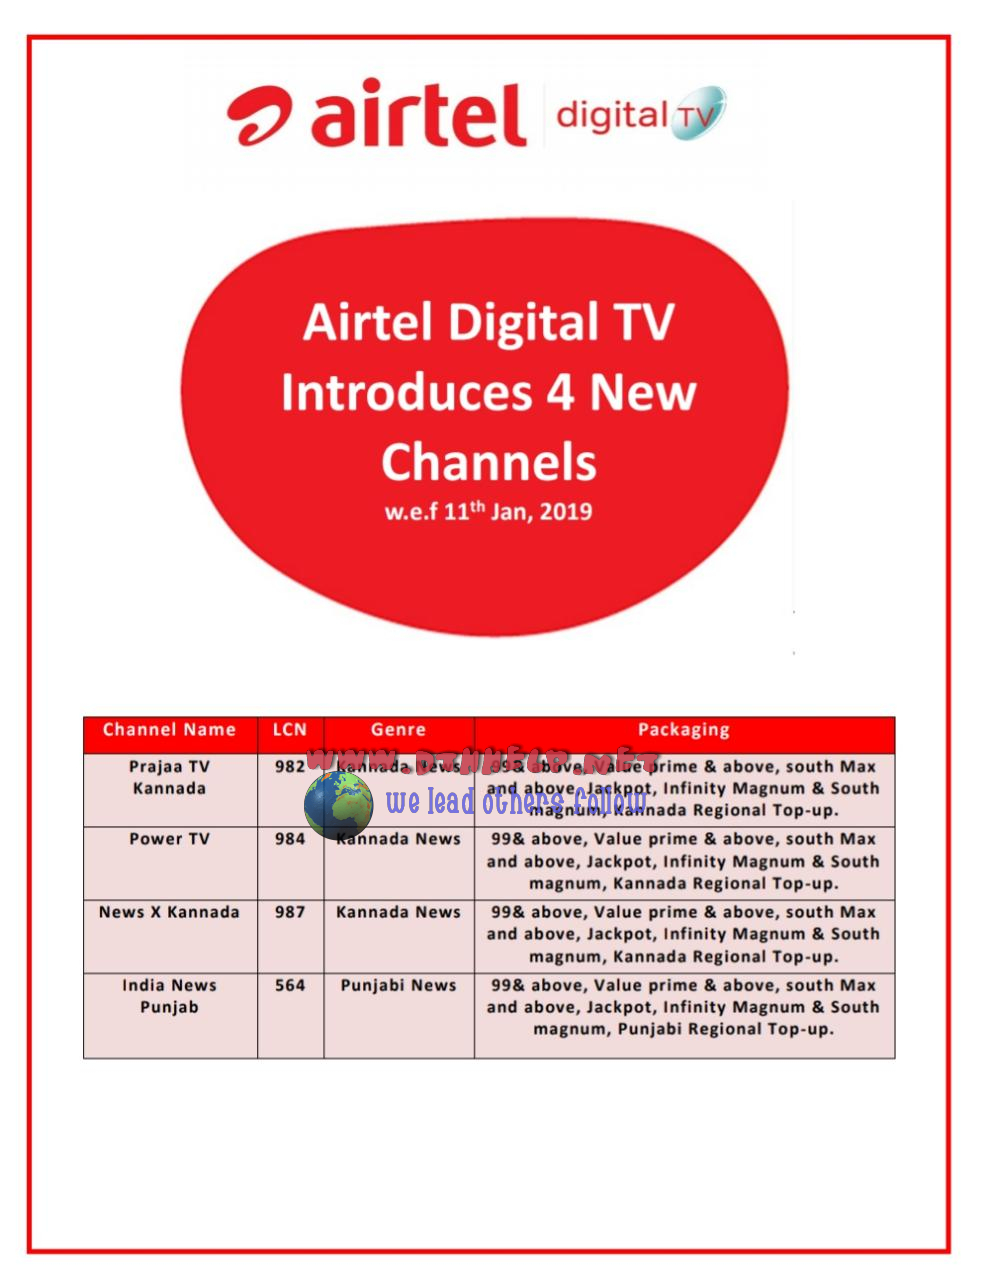 Airtel adds 4 new channels